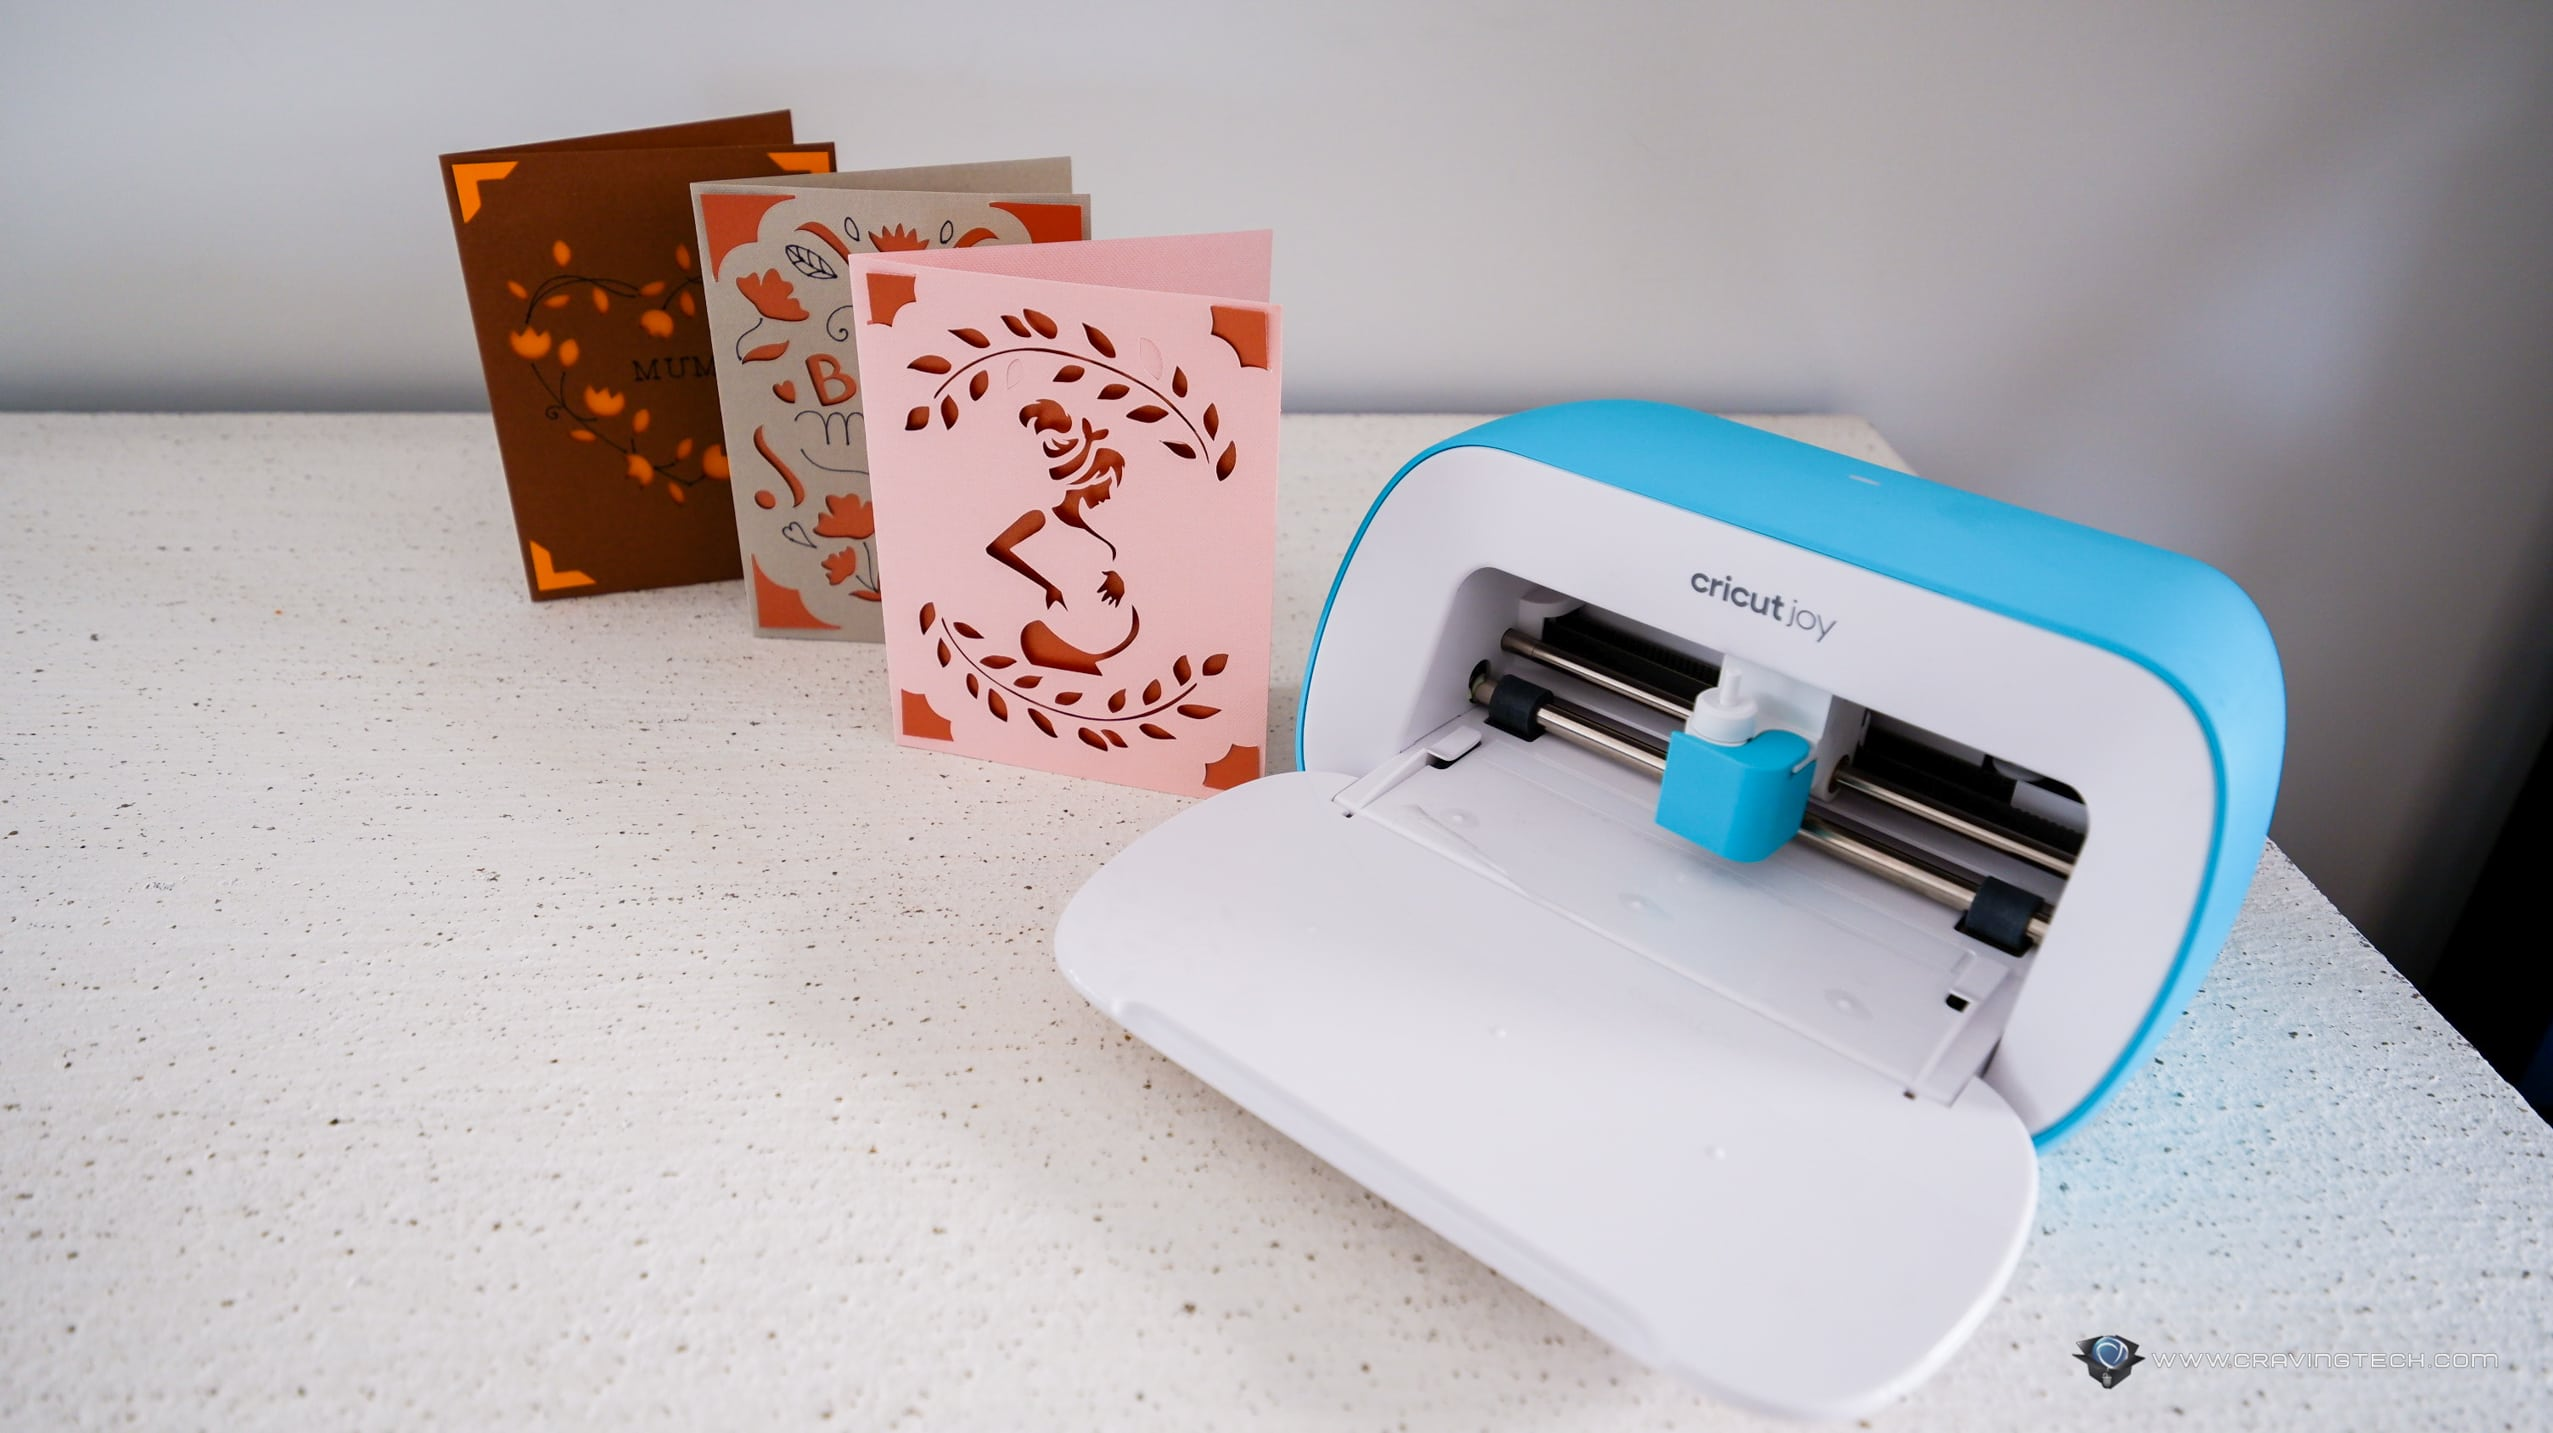 Turn your creativity into reality with joy & ease – Cricut Joy Review